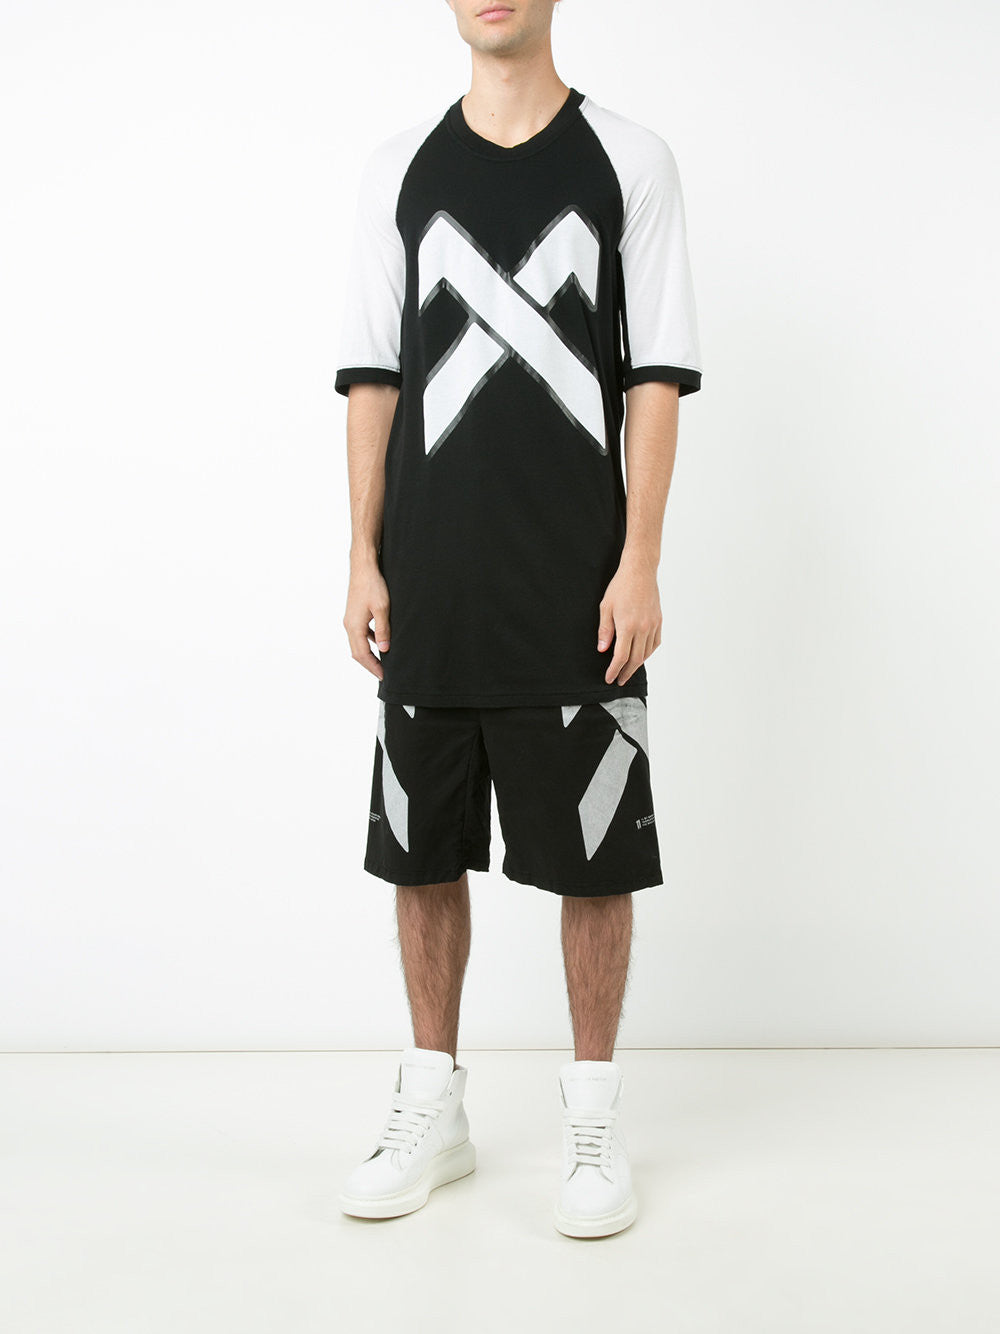 Elongated Graphic Tee | 246 TS4B 1101